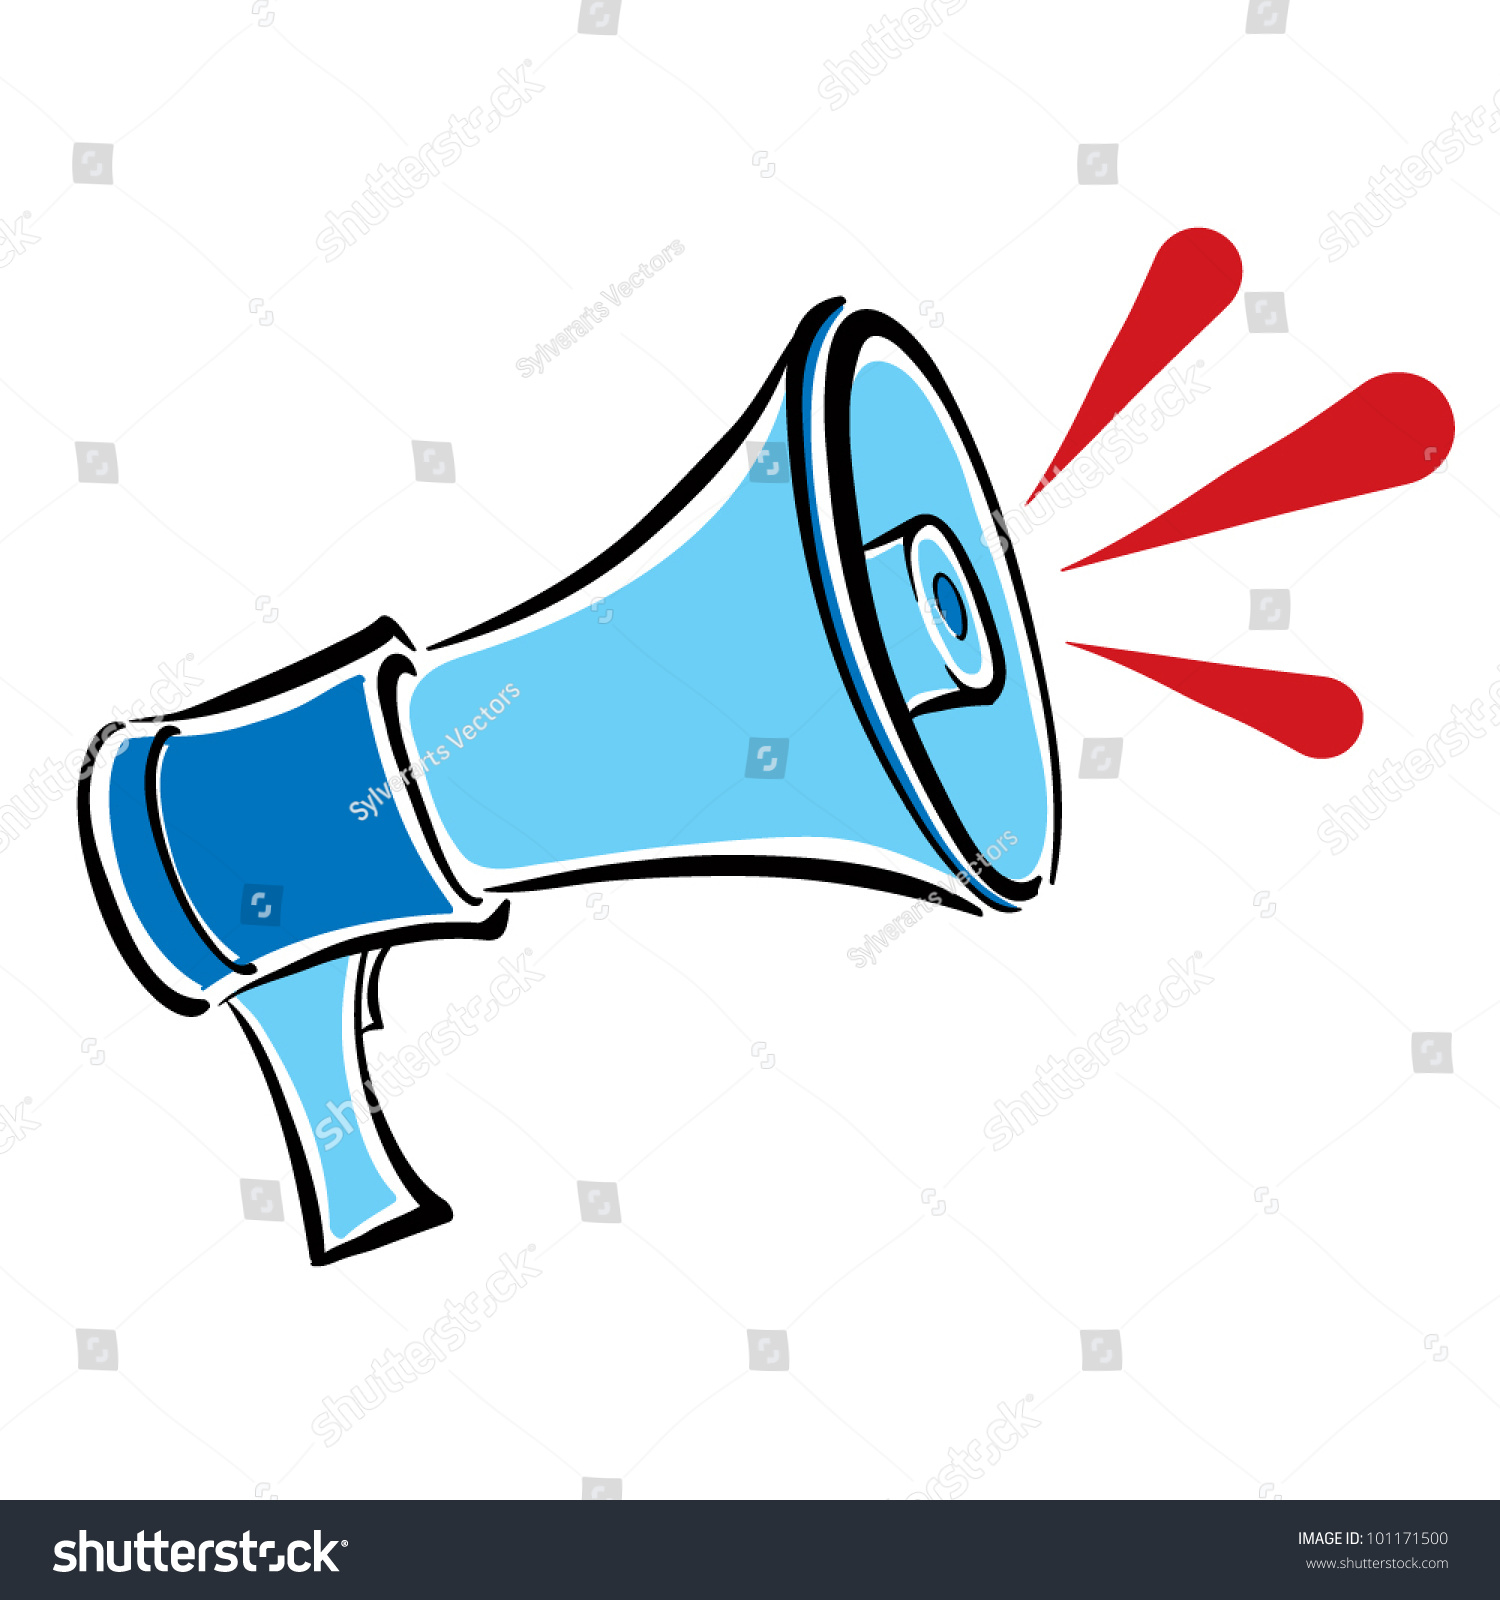 megaphone retro loudspeaker vector illustration stock vector royalty free 101171500 https www shutterstock com image vector megaphone retro loudspeaker vector illustration 101171500